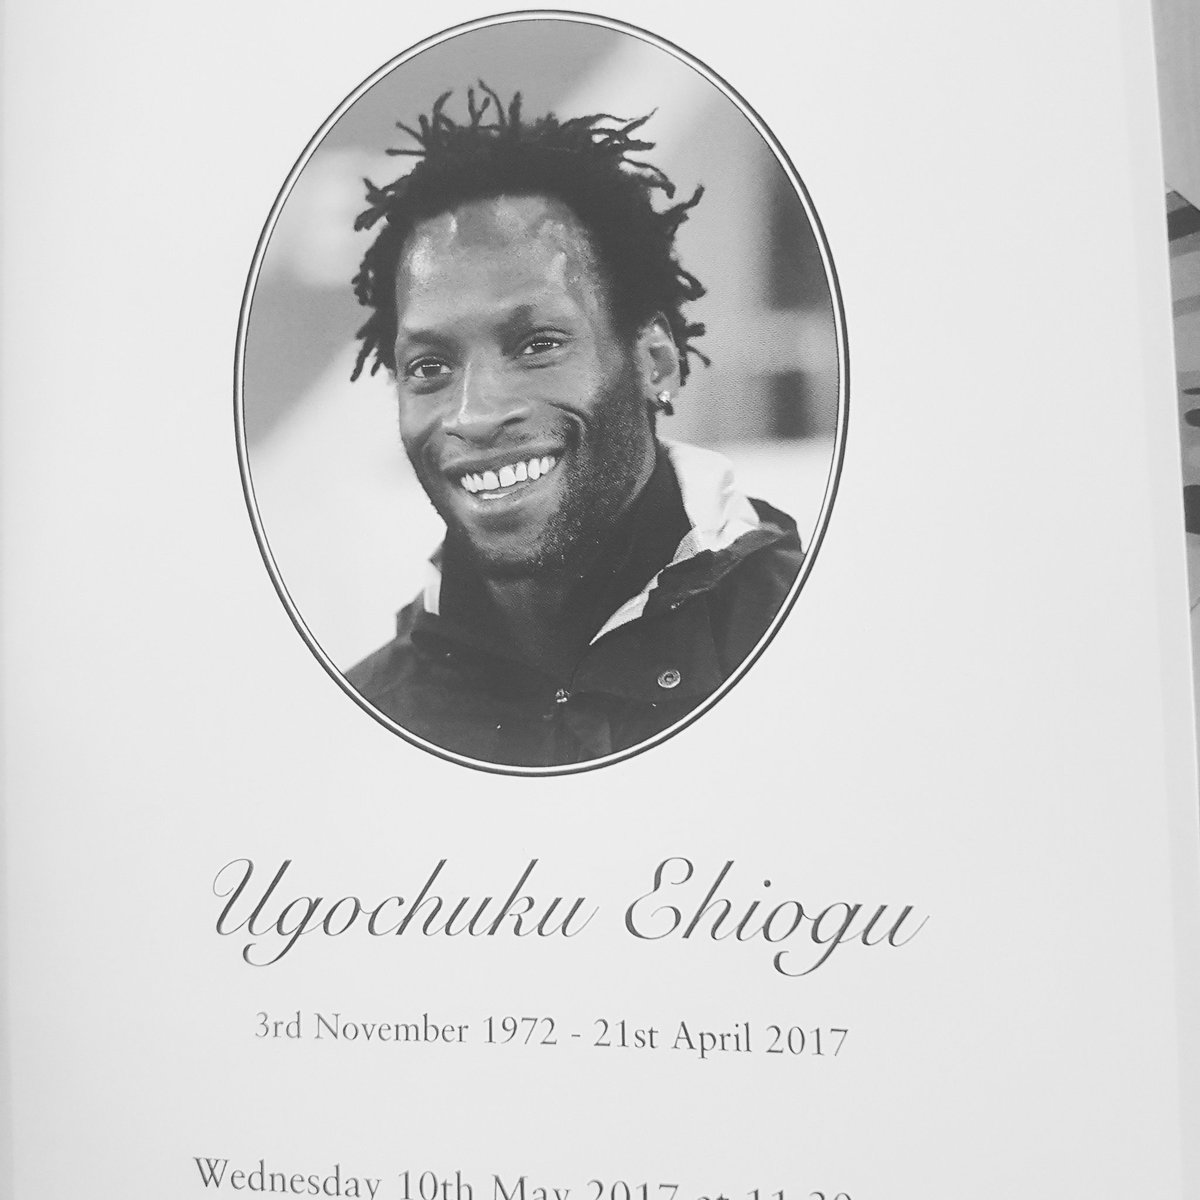 #UgoEhiogu the day was nice #1Salutes   #Hackney represented you alongside the world of football <br>http://pic.twitter.com/StrfsdA5kq